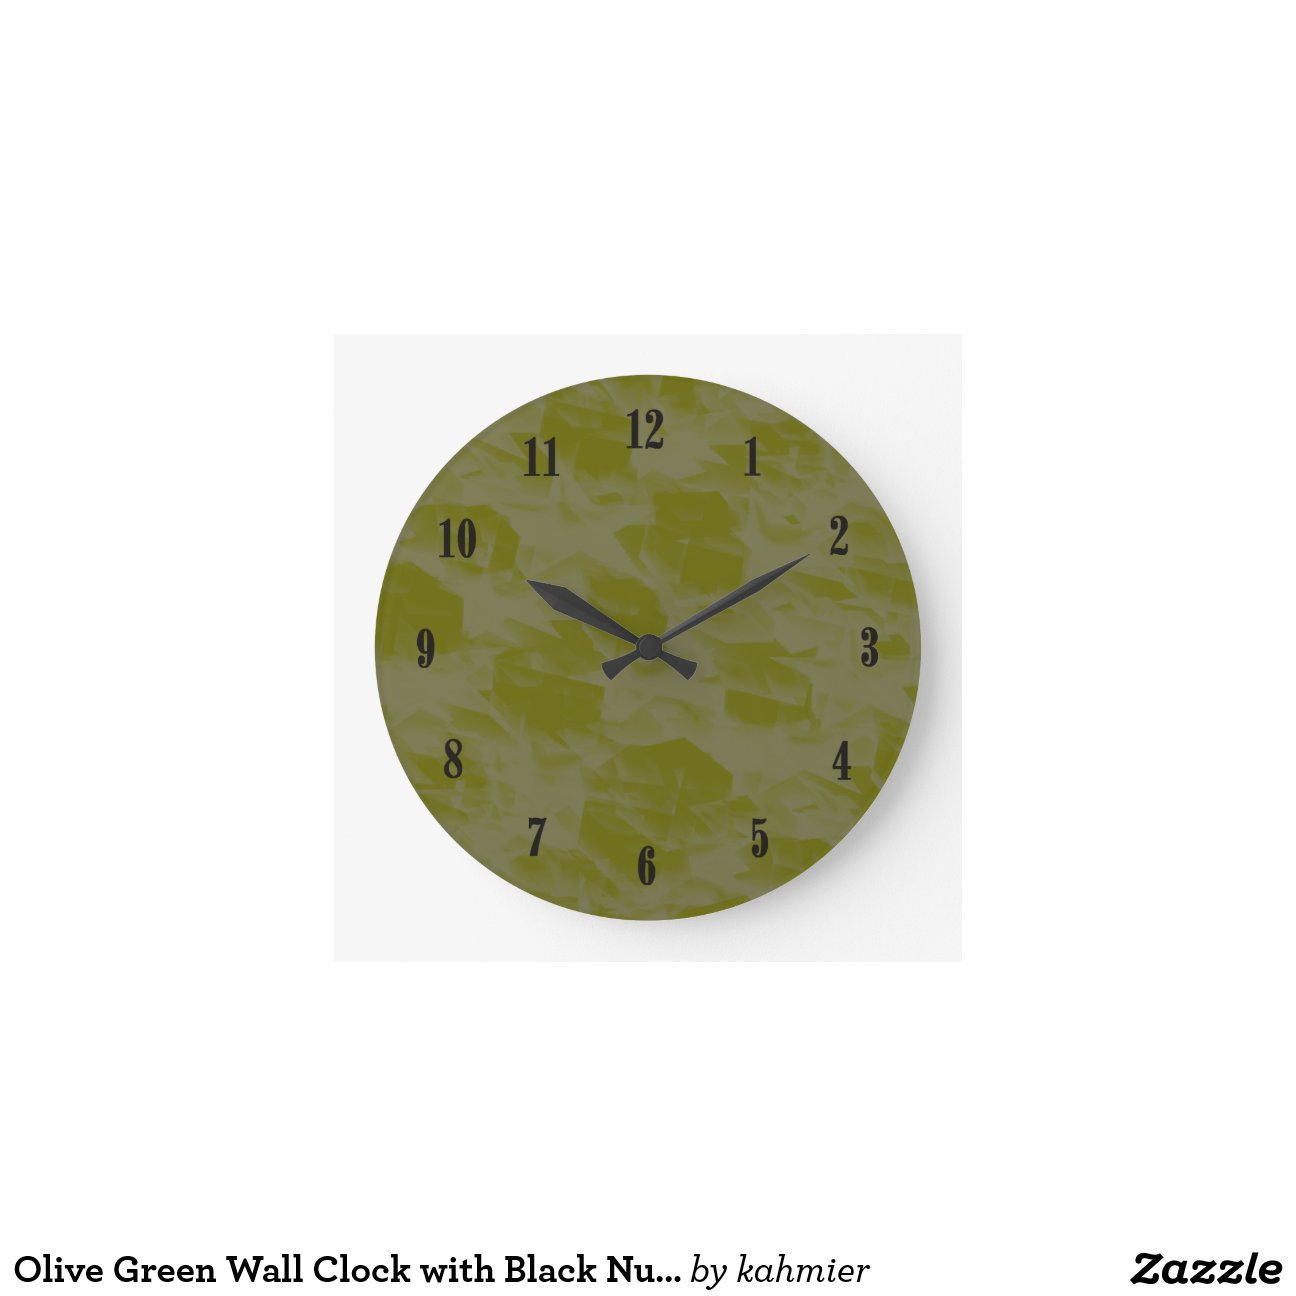 Olive green wall clock with black numbers zazzle for Green wall clocks uk